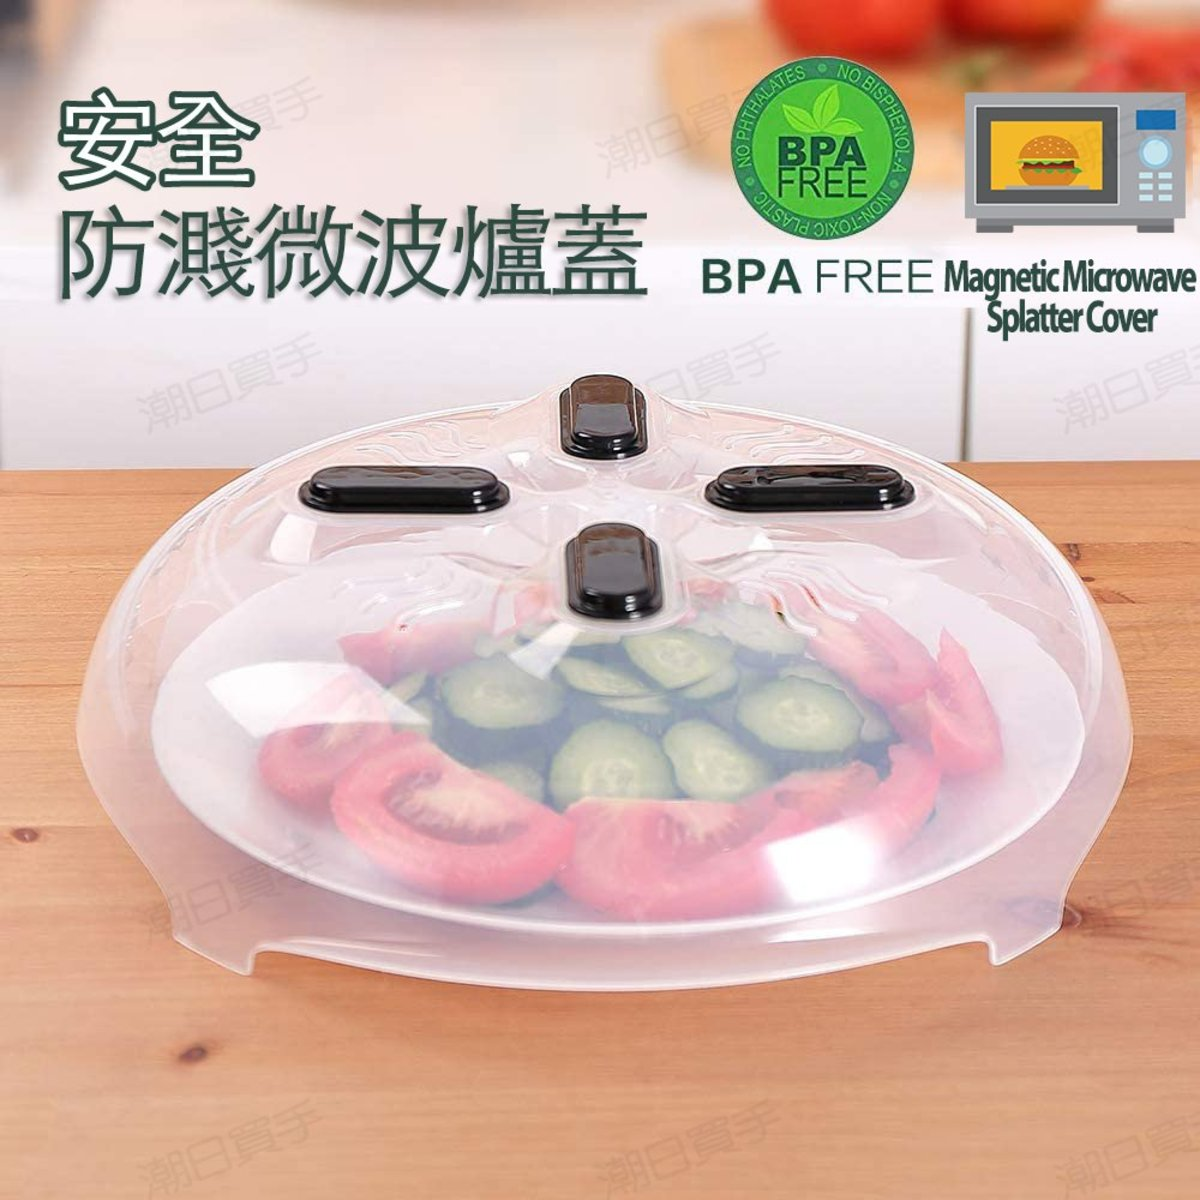 HOVER COVER 微波爐蓋 食用PP材質 安全無毒